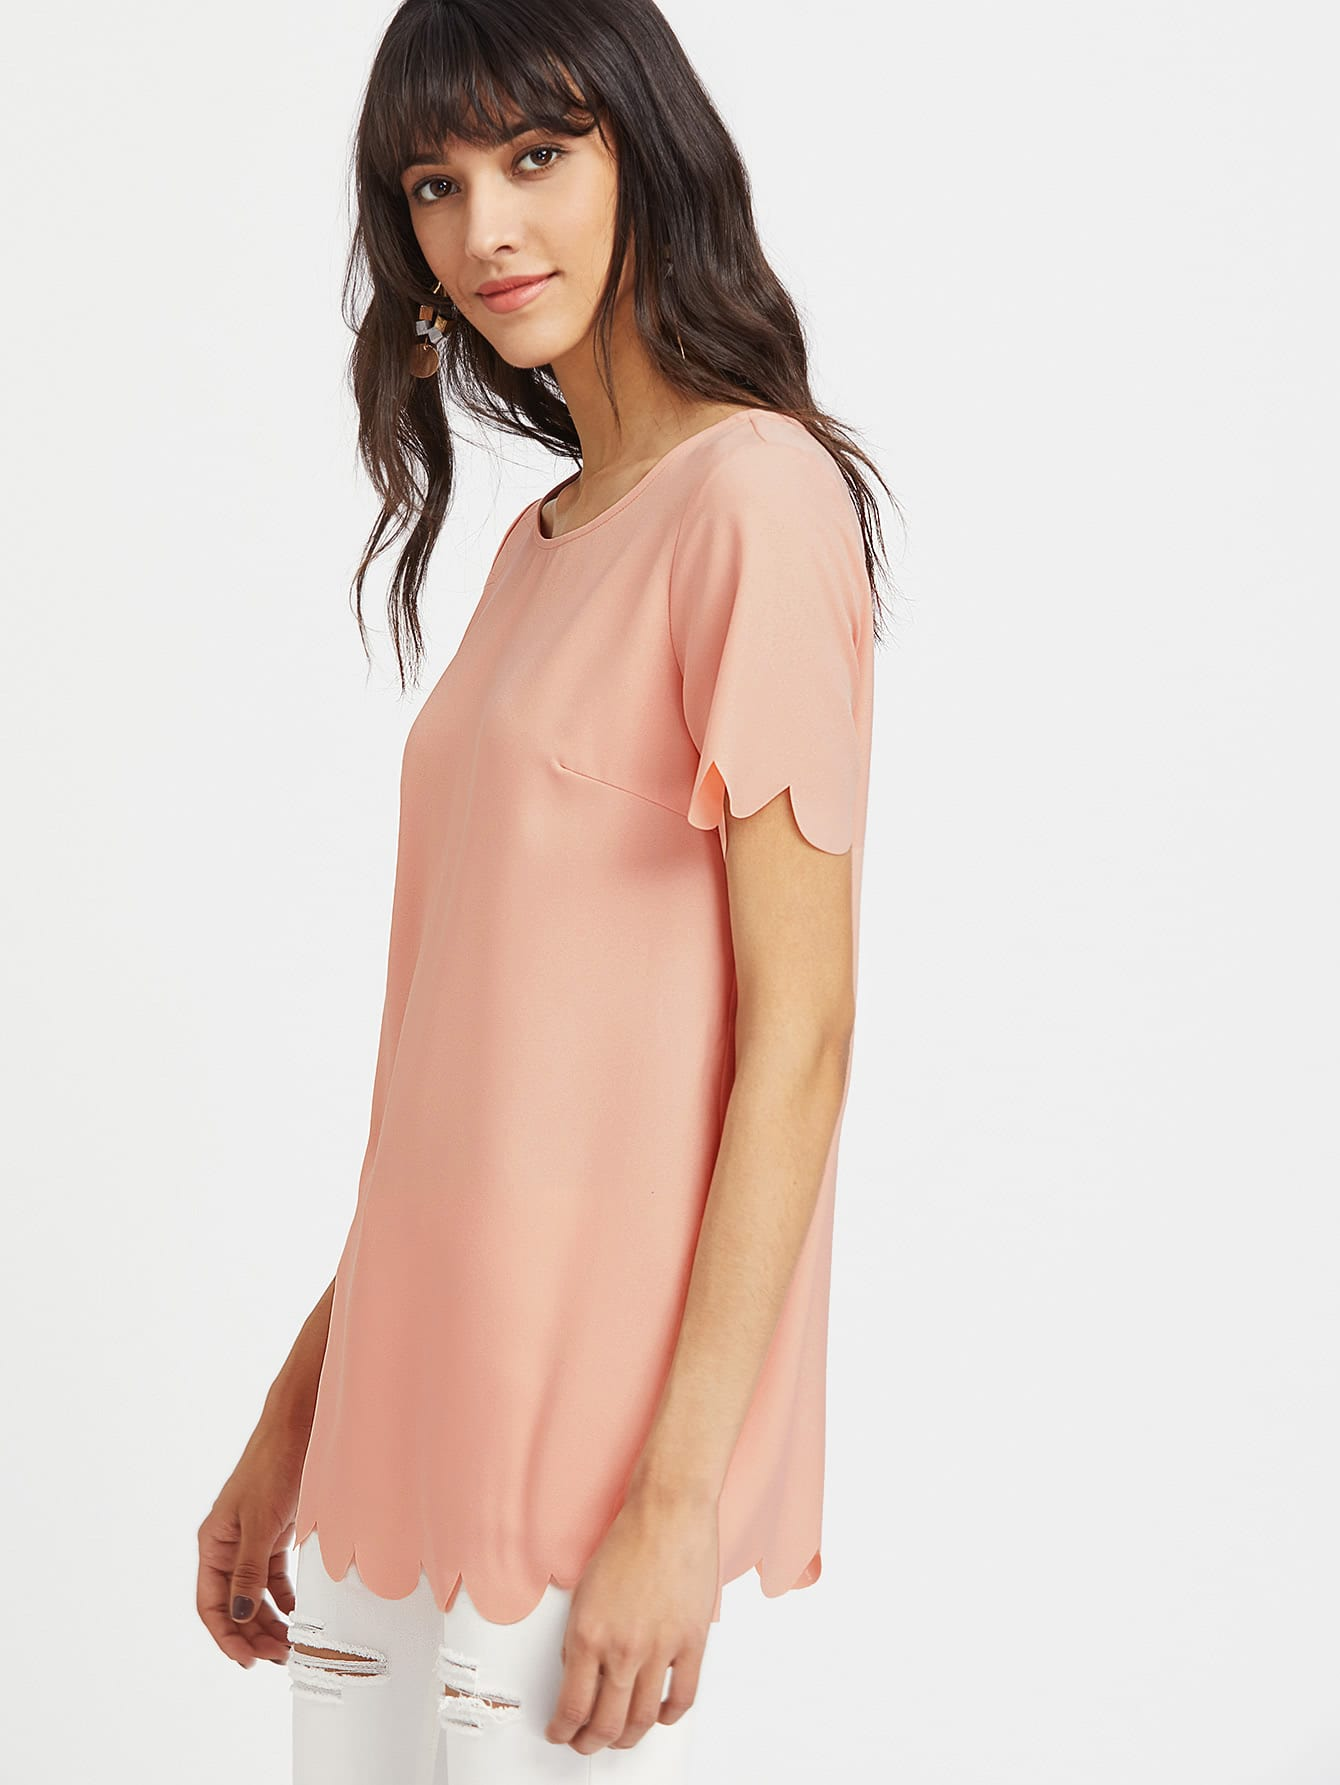 Scallop Trim Longline Tunic Top mikado feeder 9109 8 золото с лопаткой